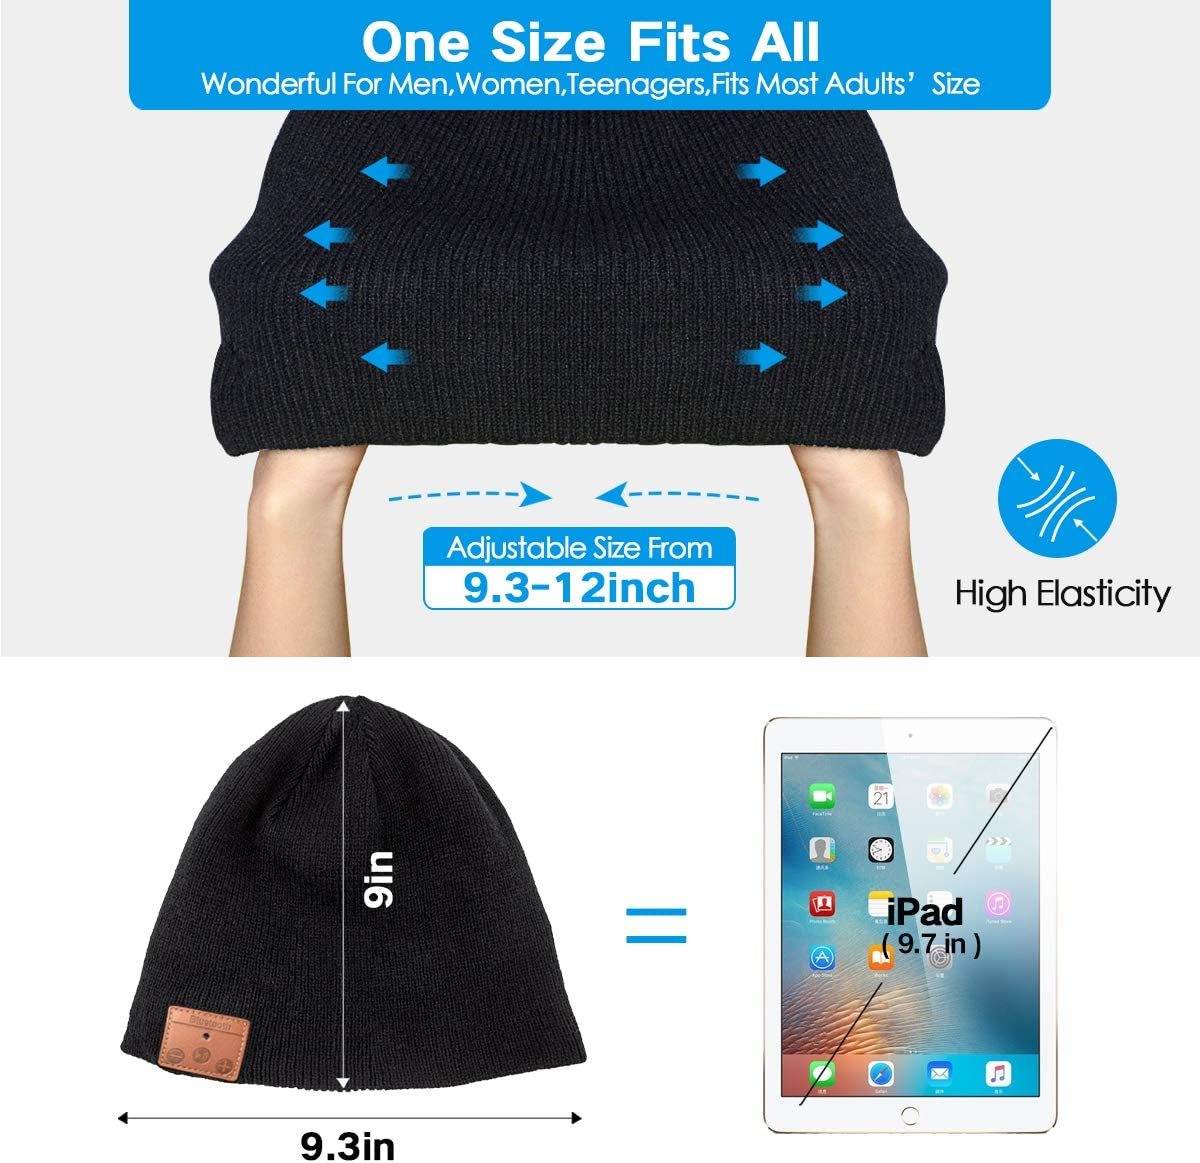 Bluetooth Beanie,Stereo Knit Music Hat with Bluetooth V5.0 Wireless Hats Headphone Upgraded Unisex Knit Bluetooth Beanie Suitable for Outdoor Sports,Gift